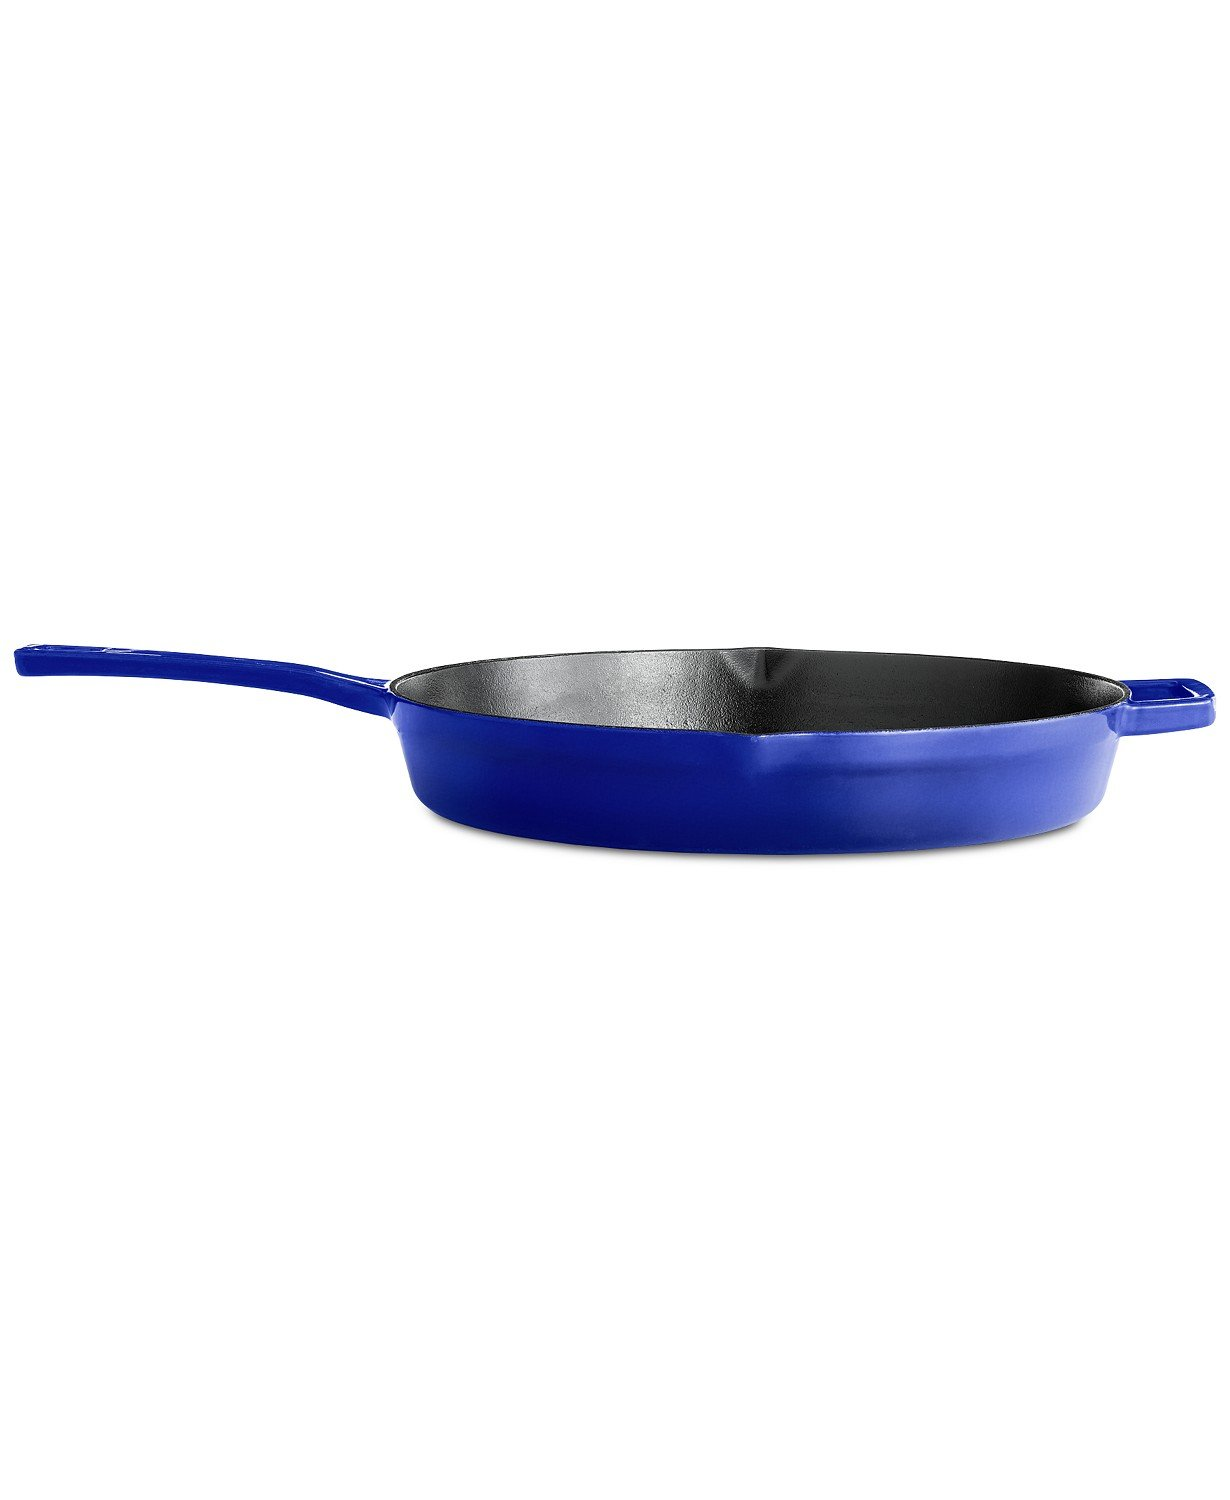 12'' Enameled Cast Iron Skillet & Fry Pan | Collector's Cast Iron Cookware | By Martha Stewart (Indigo)